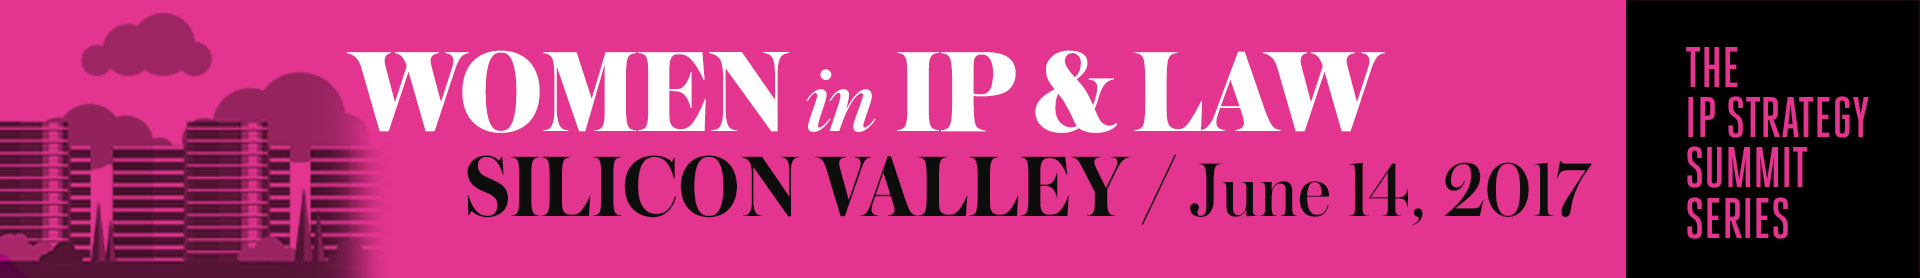 The Women in IP & Law Summit: Silicon Valley 2017